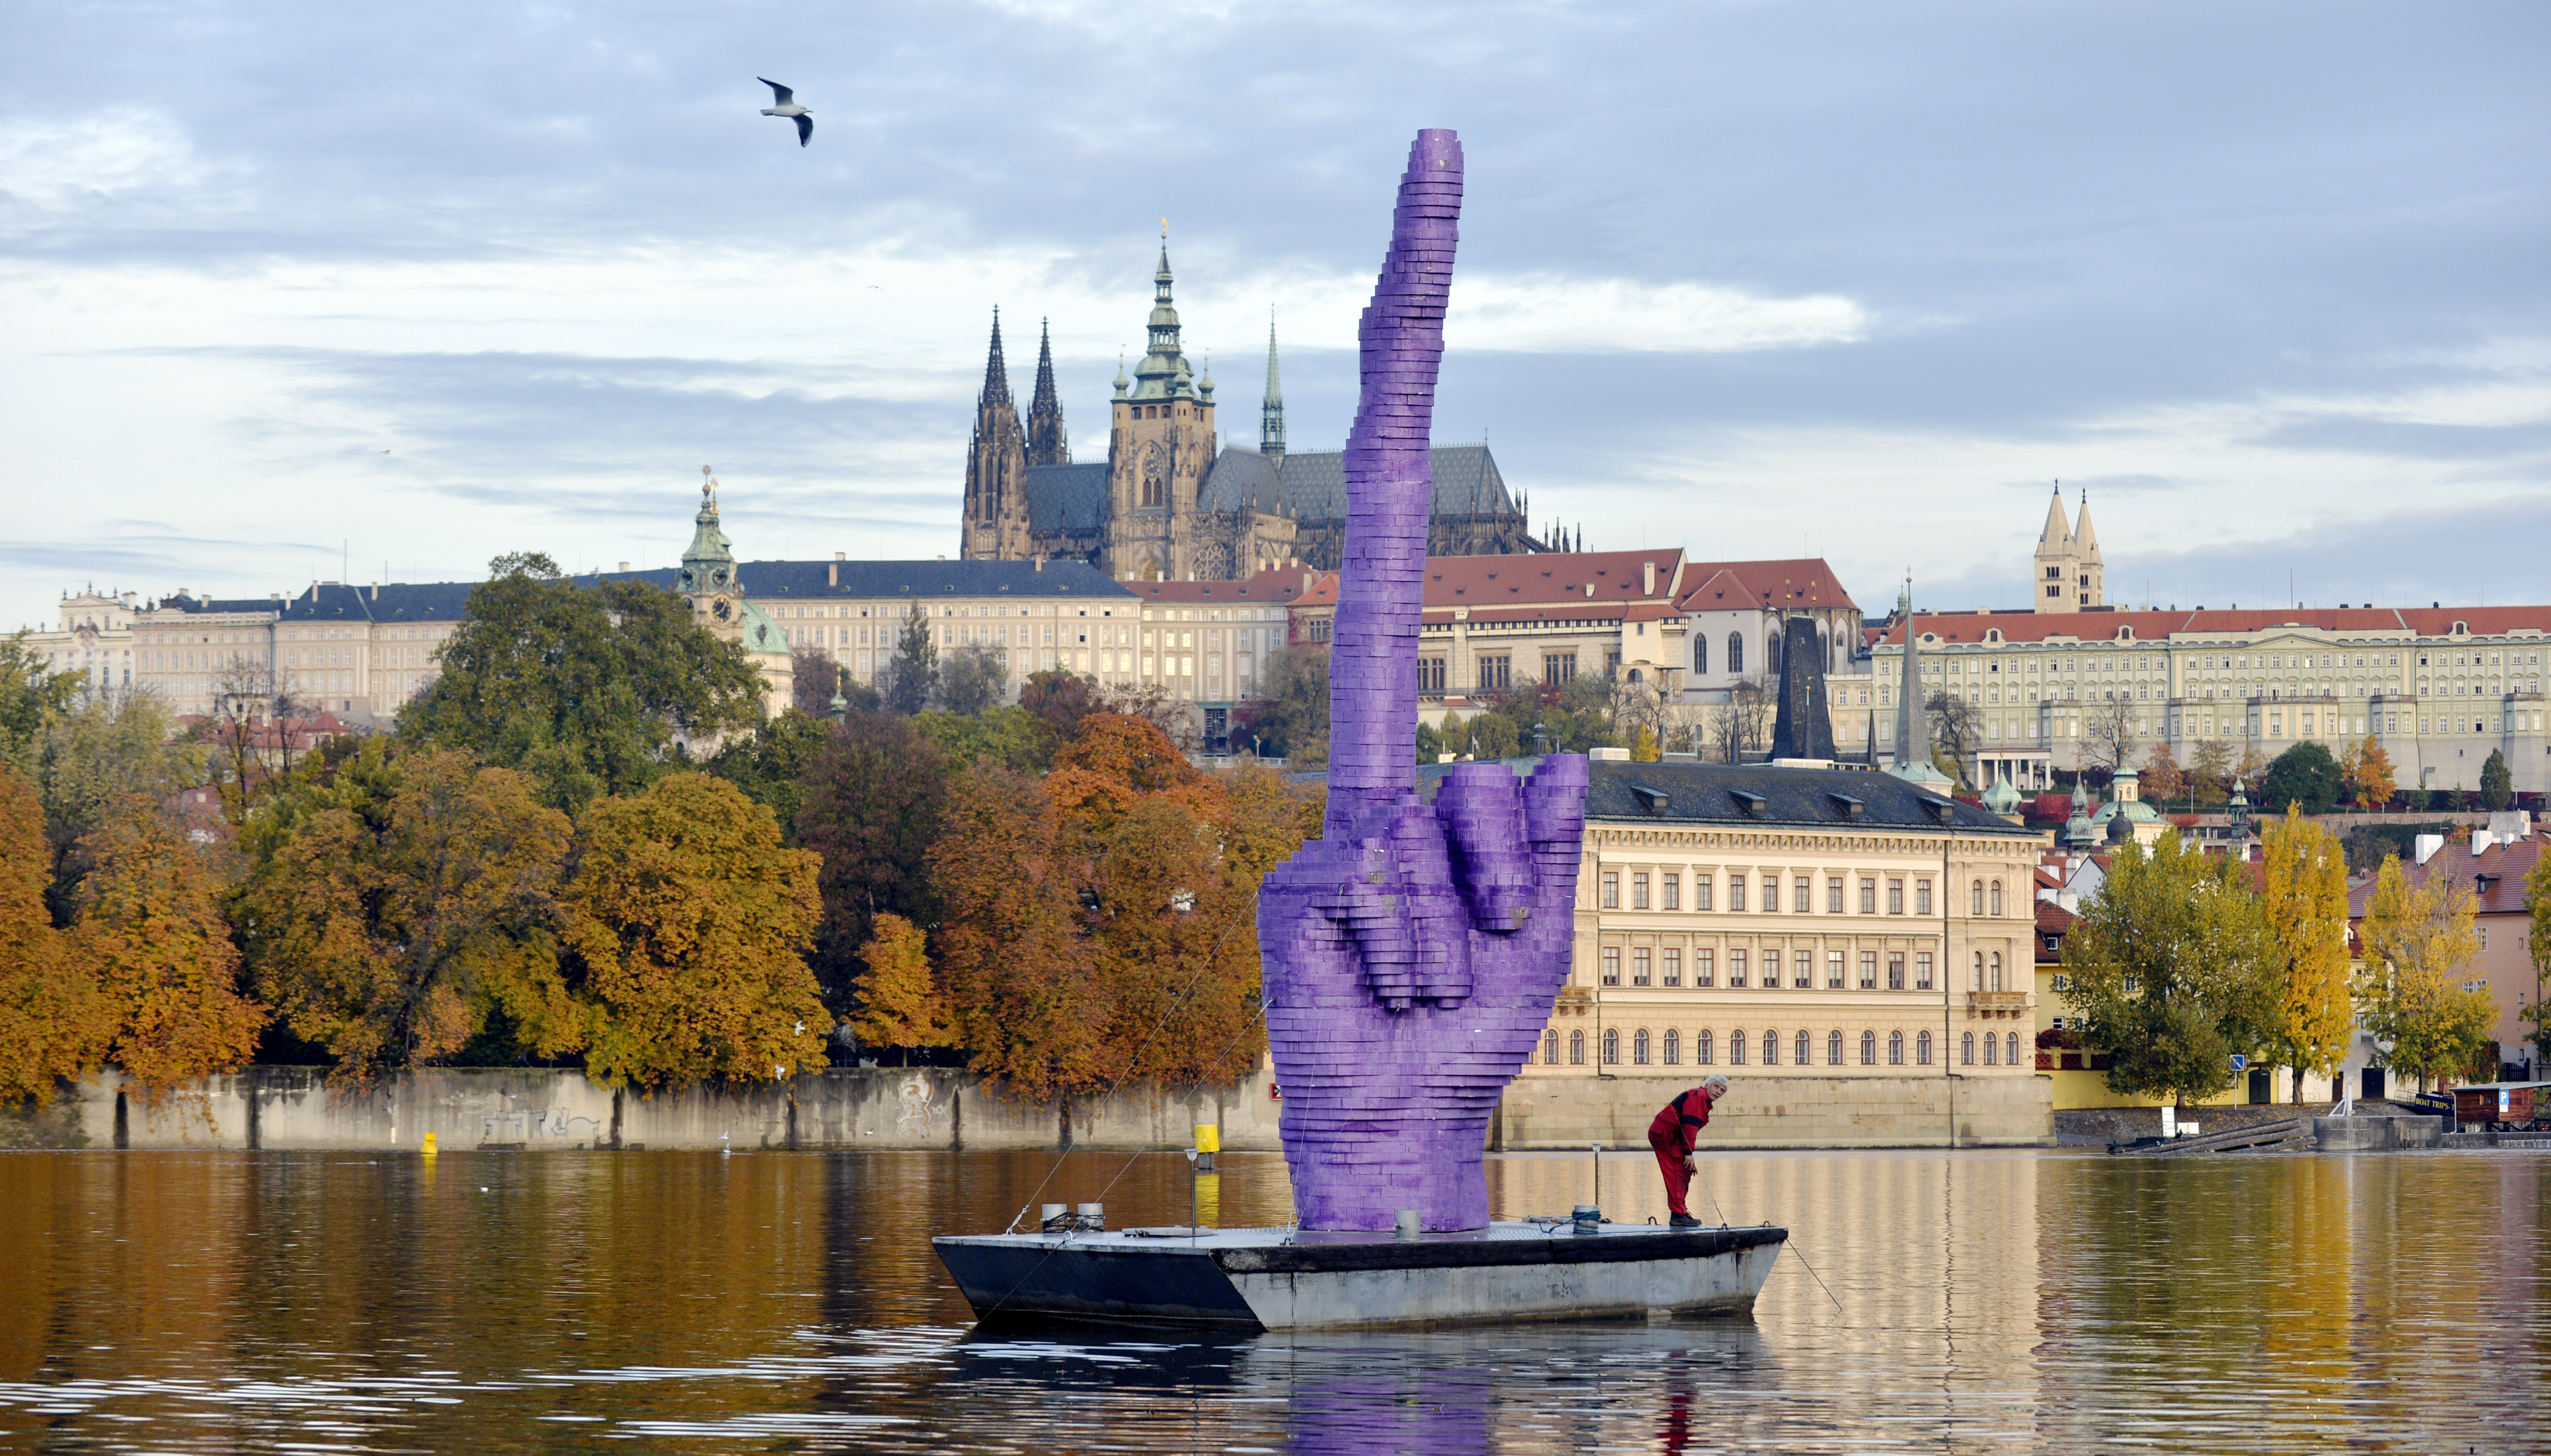 Czech Artist David Cerny Aims Giant Middle Finger At